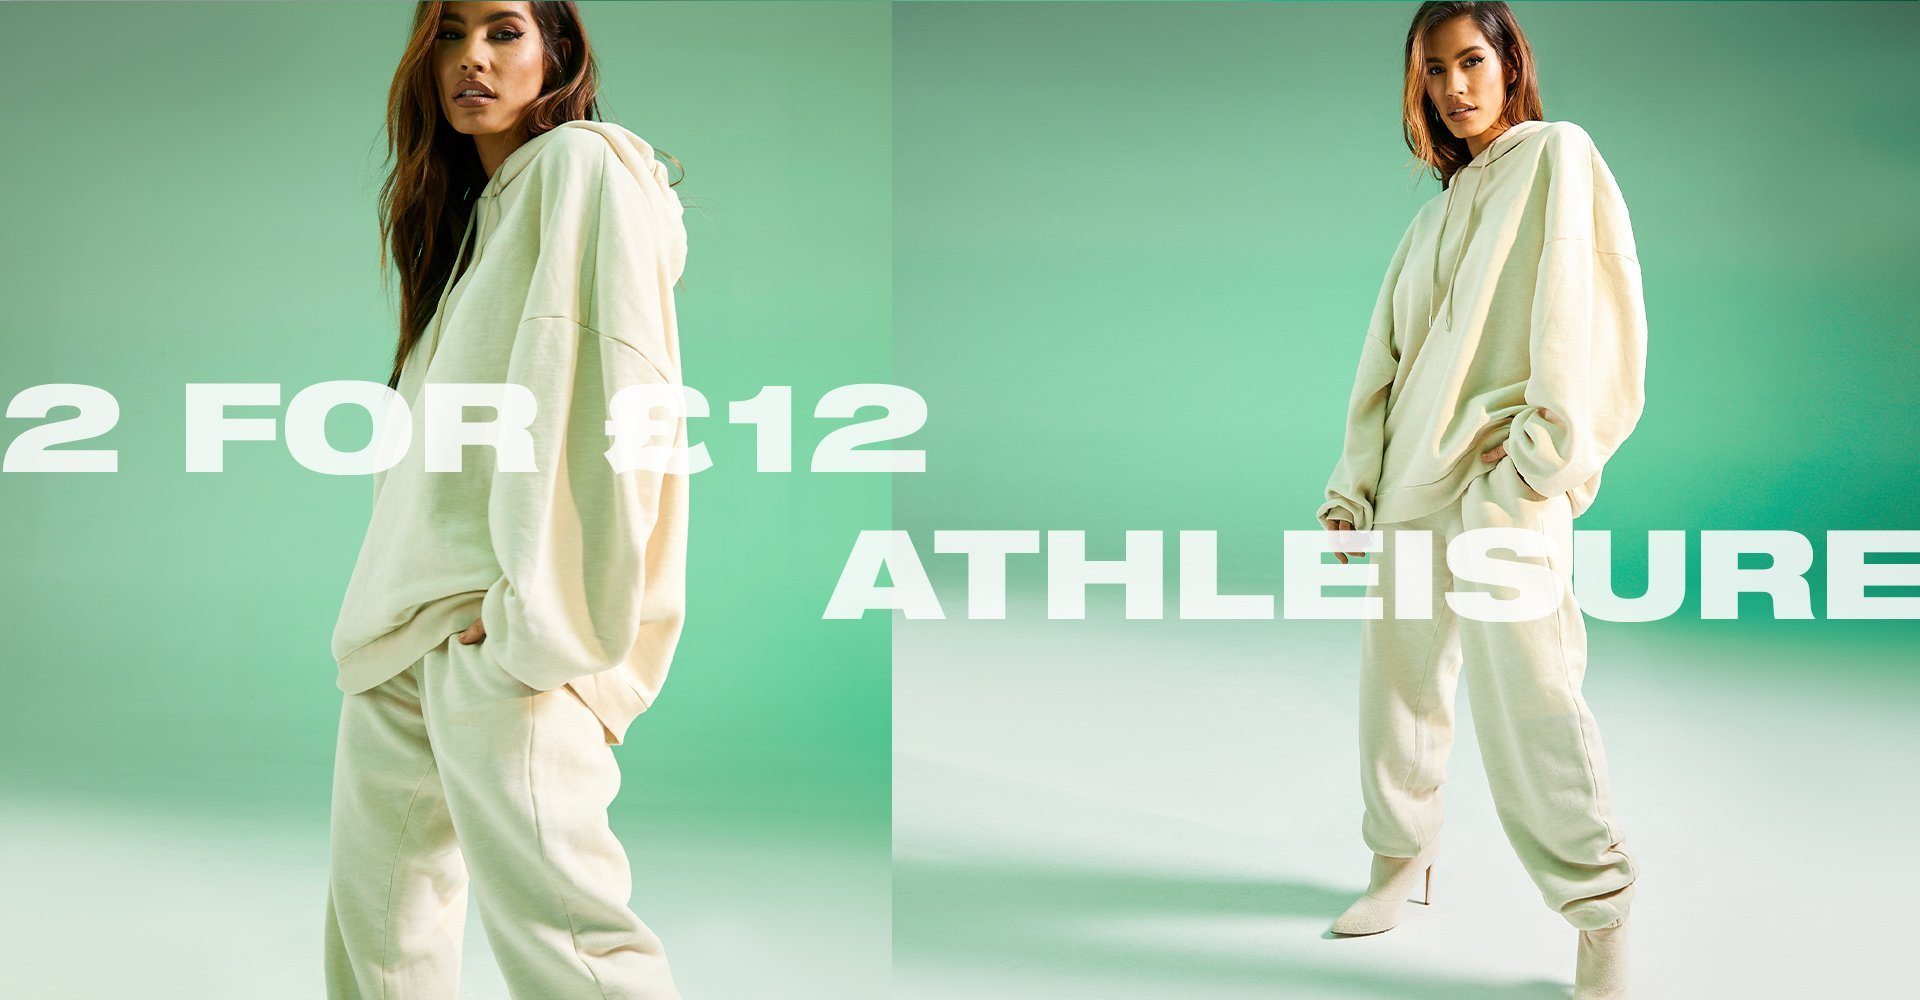 2 for £12 Athleisure